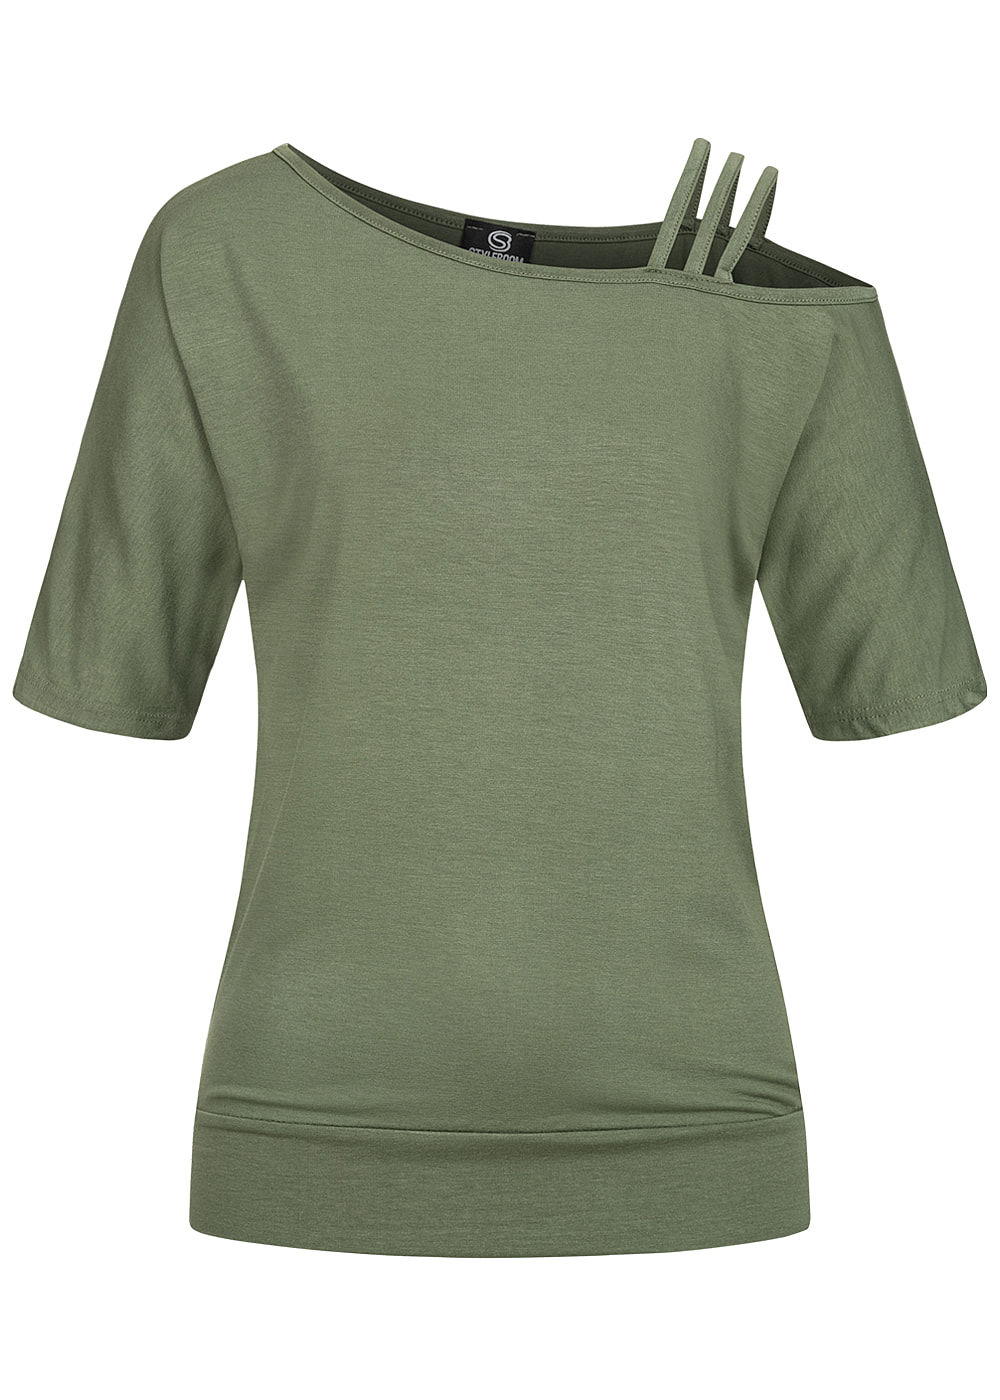 Styleboom Fashion Damen 1/2 Arm Cold Shoulder Shirt 3 Schulterträger oliv grün - Art.-Nr.: 20086381